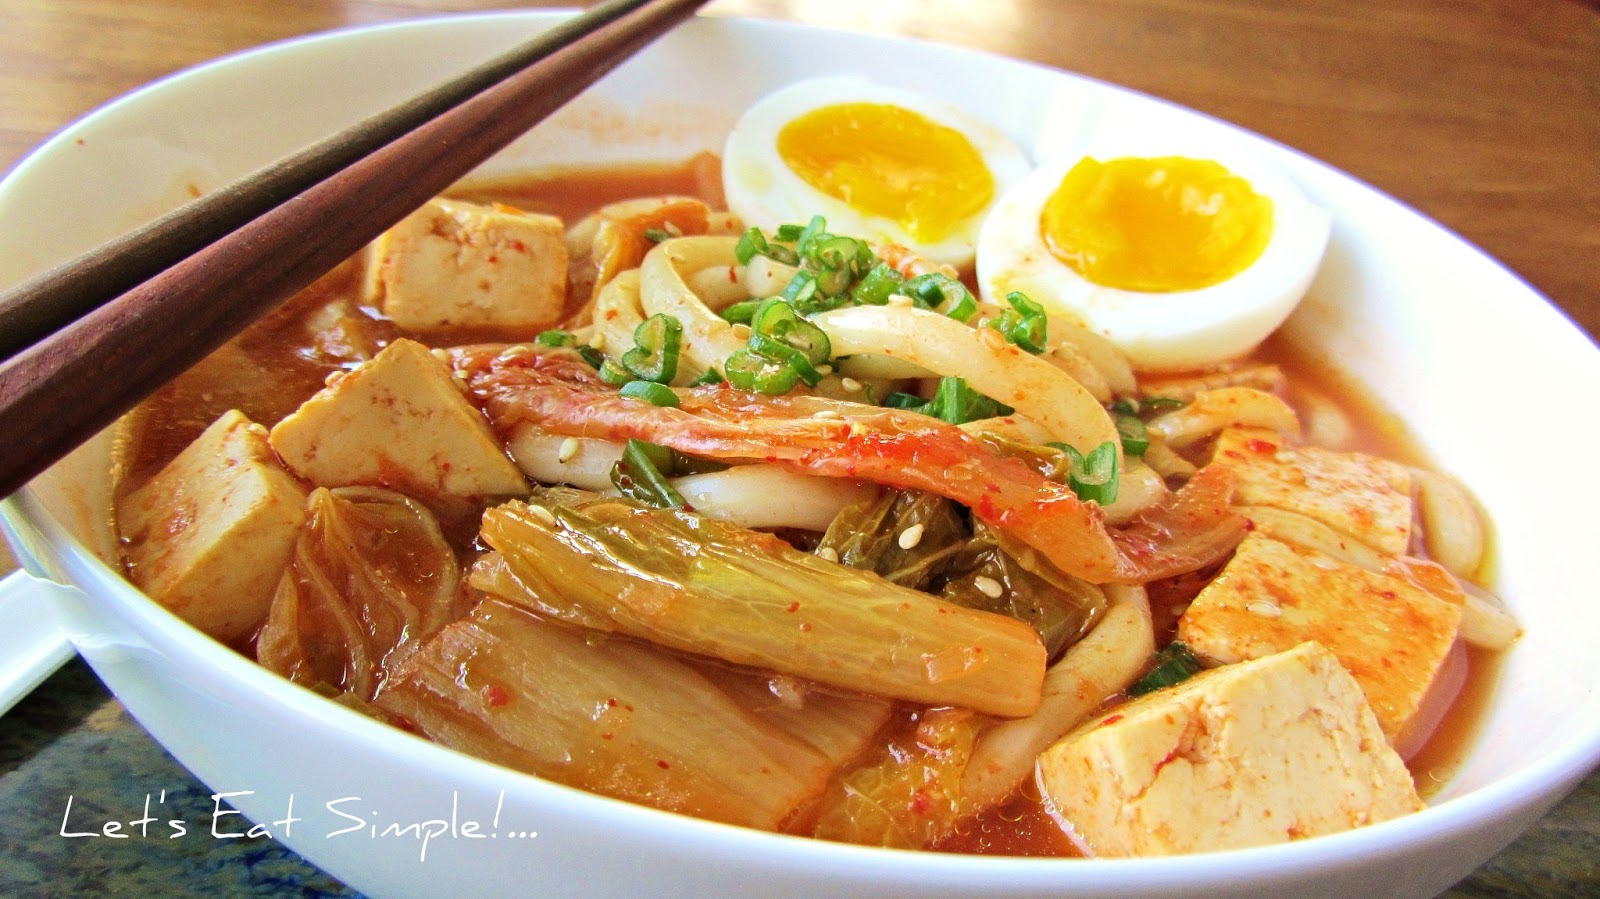 Let's eat.....simple!: Kimchi and Tofu Udon Noodle Soup